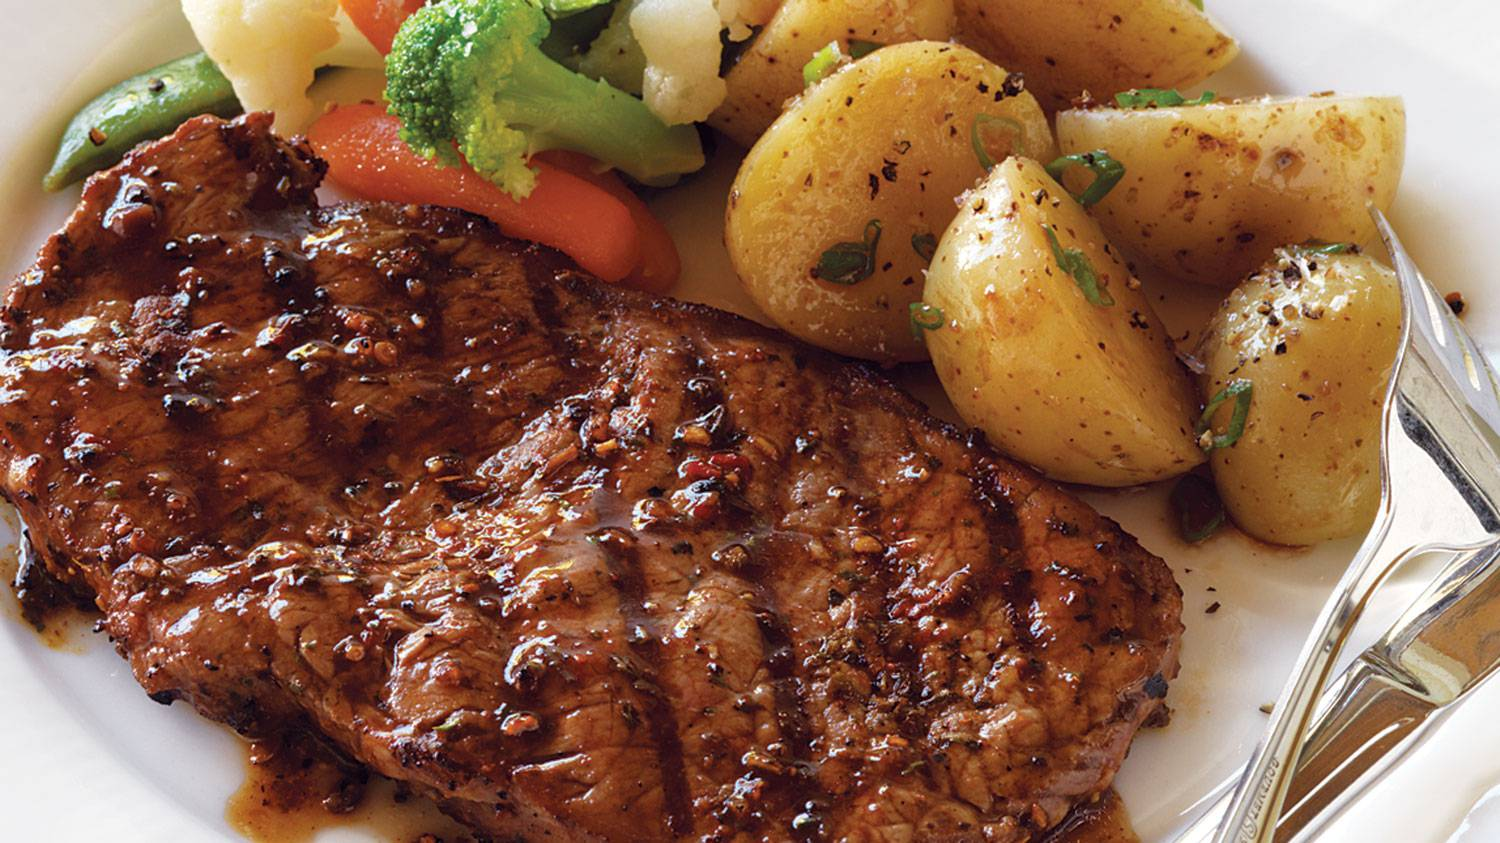 cajun-steak-with-potatoes-_-vegetables-cropped